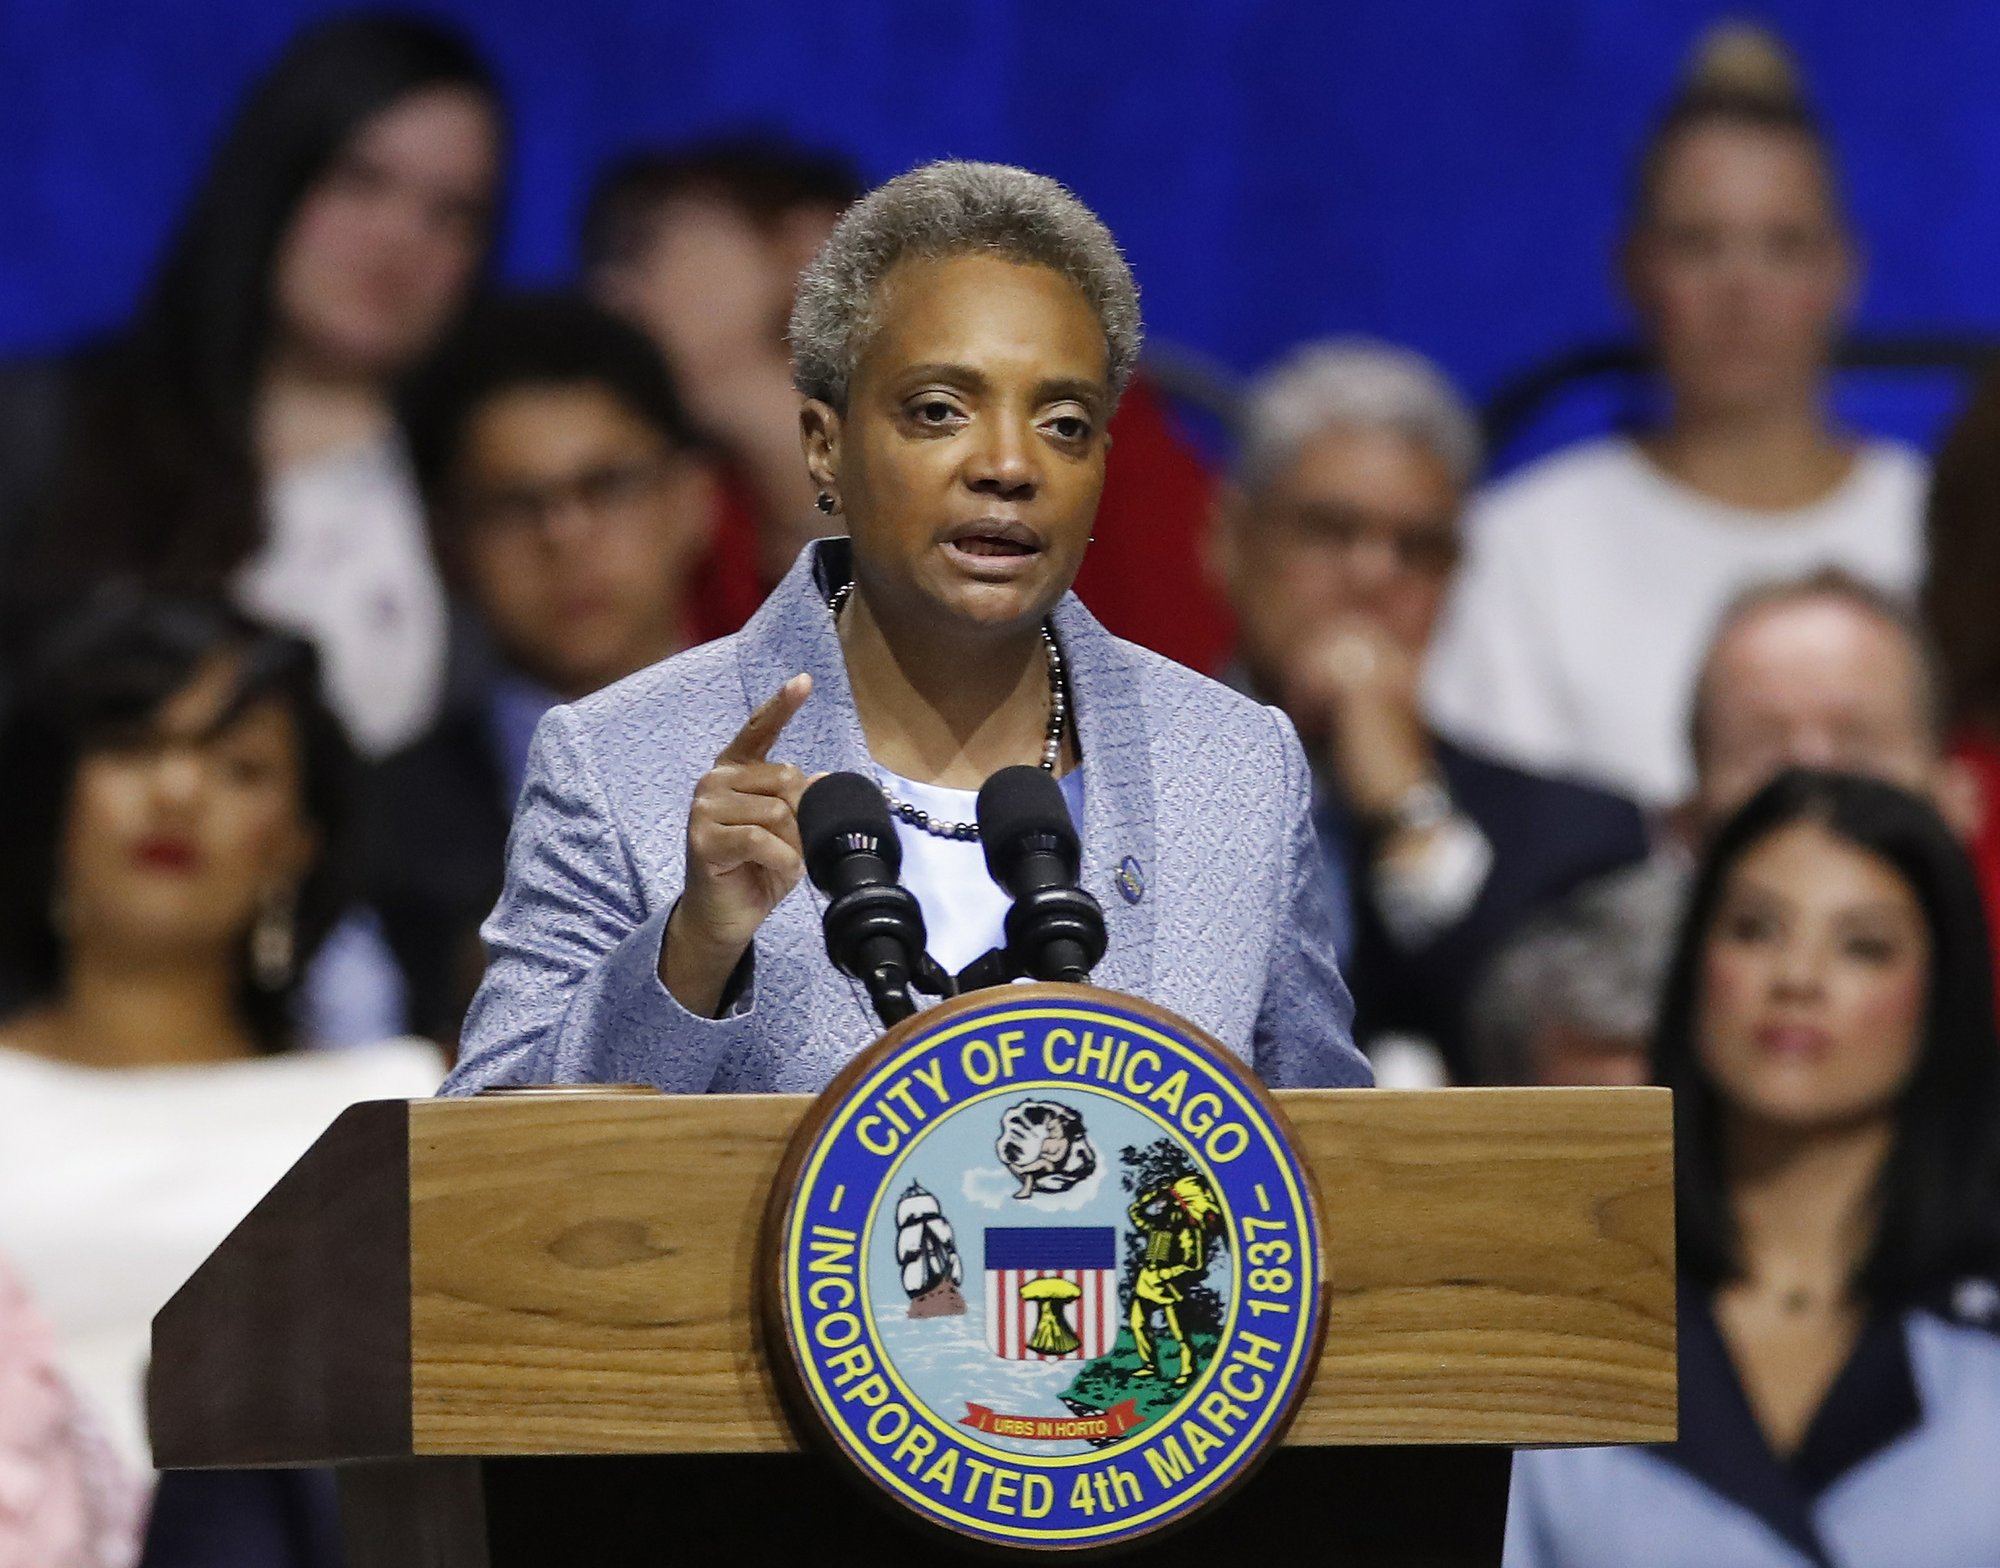 The Latest: New Chicago mayor delivers on reform pledge